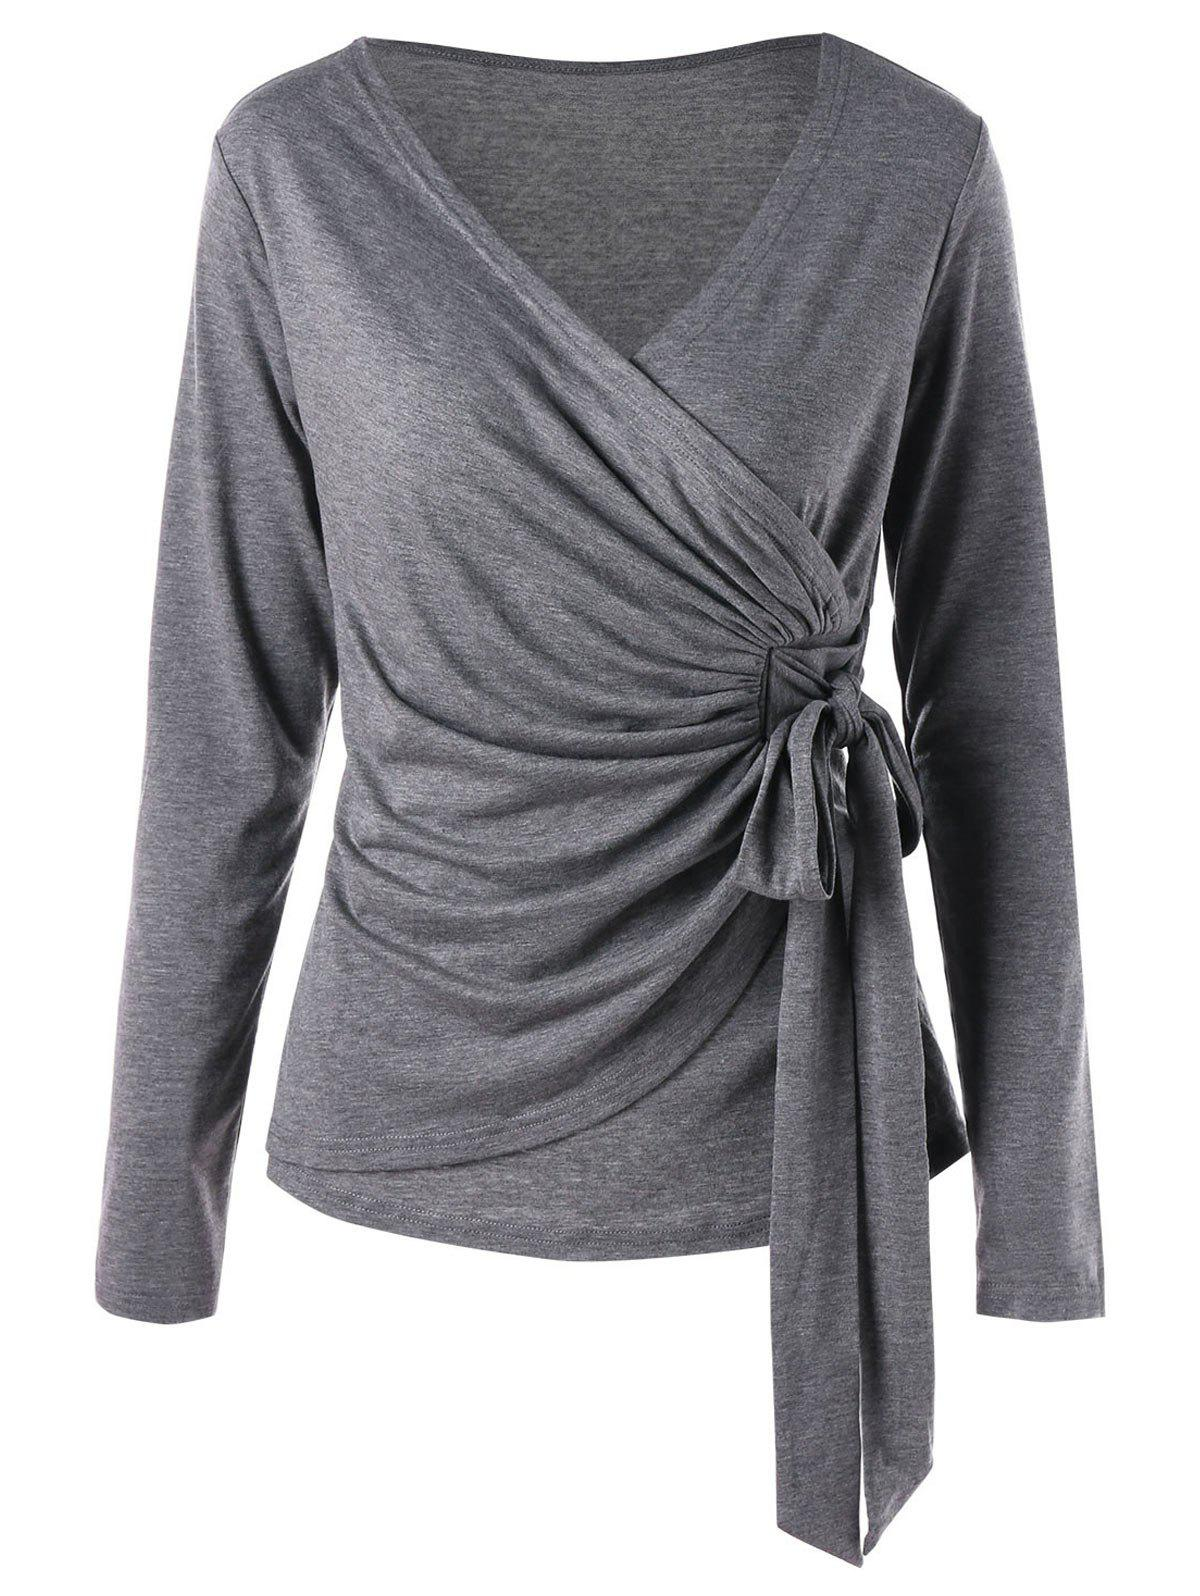 Overlap Self Tie Surplice TopWOMEN<br><br>Size: 2XL; Color: PEARL DARK GREY; Material: Rayon,Spandex; Shirt Length: Regular; Sleeve Length: Full; Collar: V-Neck; Style: Casual; Pattern Type: Solid Color; Season: Fall,Spring; Weight: 0.3100kg; Package Contents: 1 x Top;